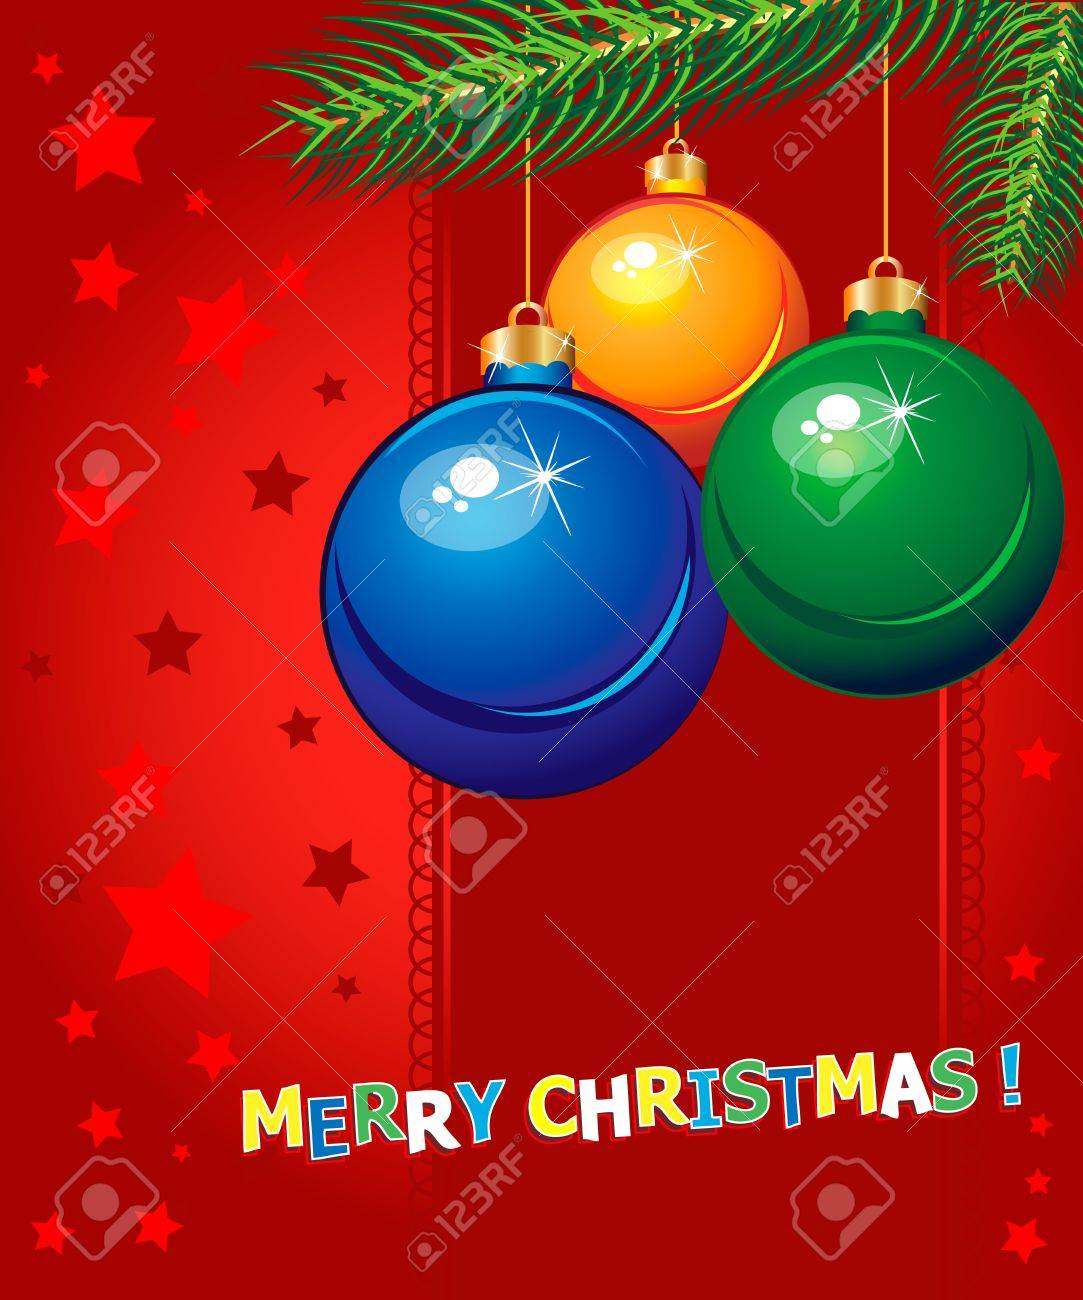 Merry Christmas elegant suggestive background for greetings card Stock Vector - 16385725